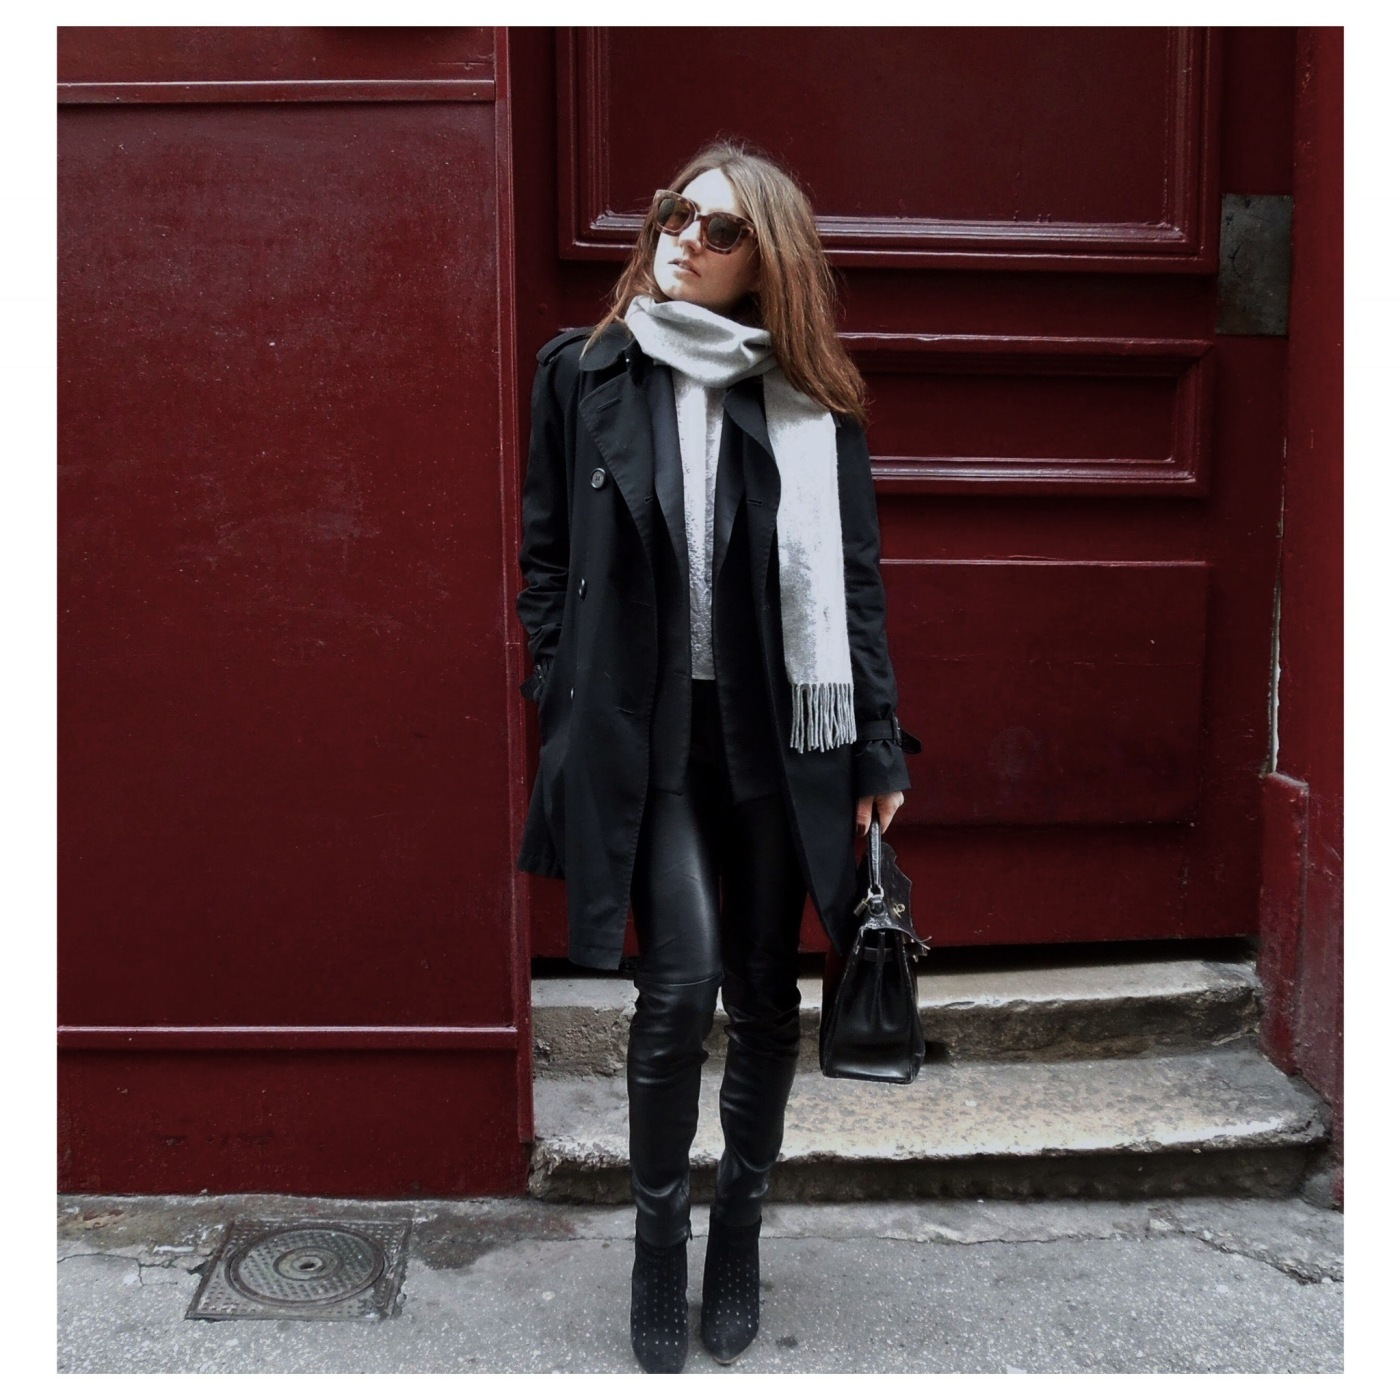 Mathilde G fashion blogger streetstyle 3